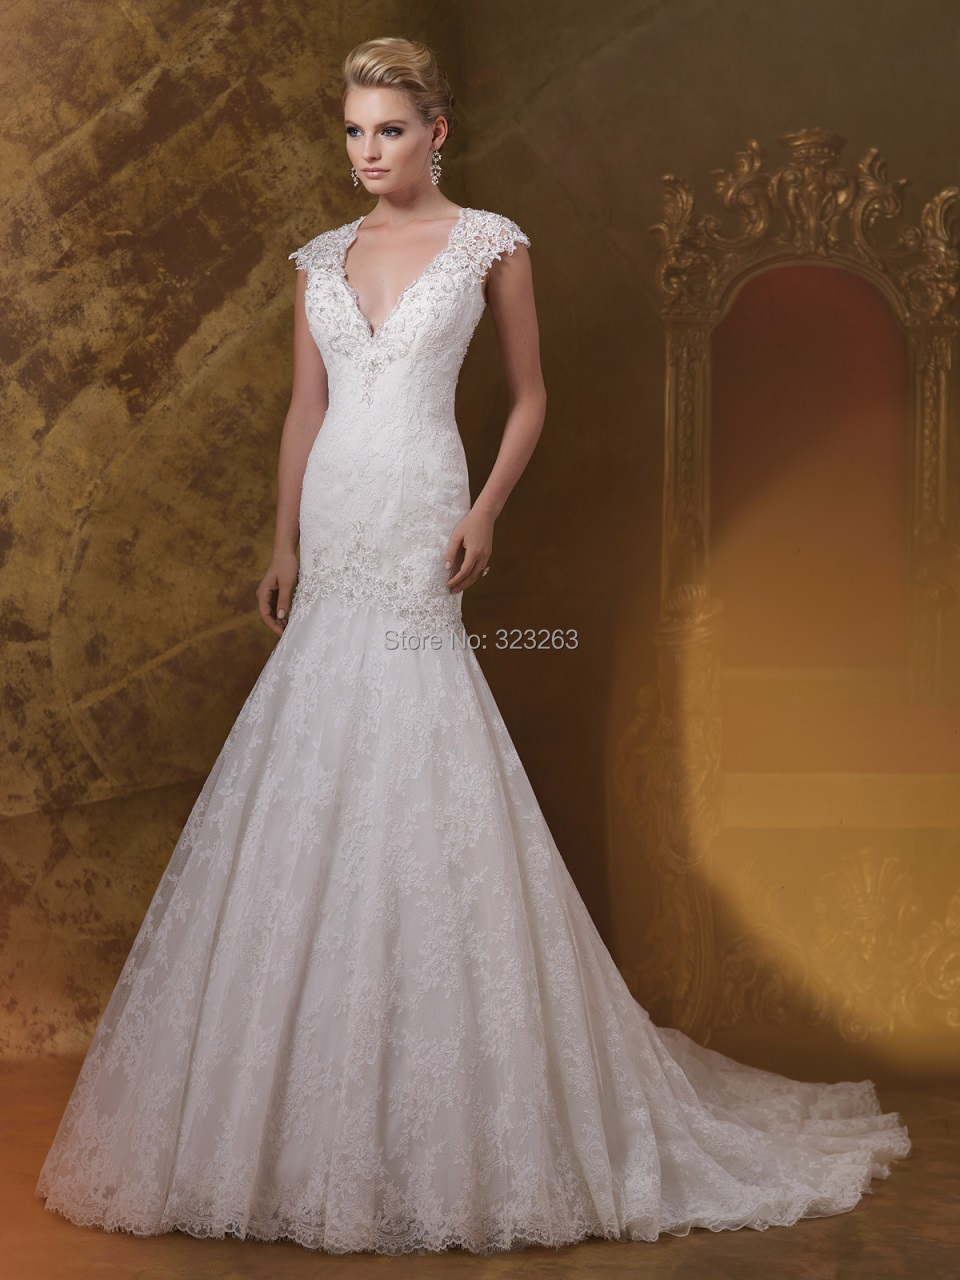 Greek Style Cap Sleeve Mermaid Wedding Dresses Lace 2015